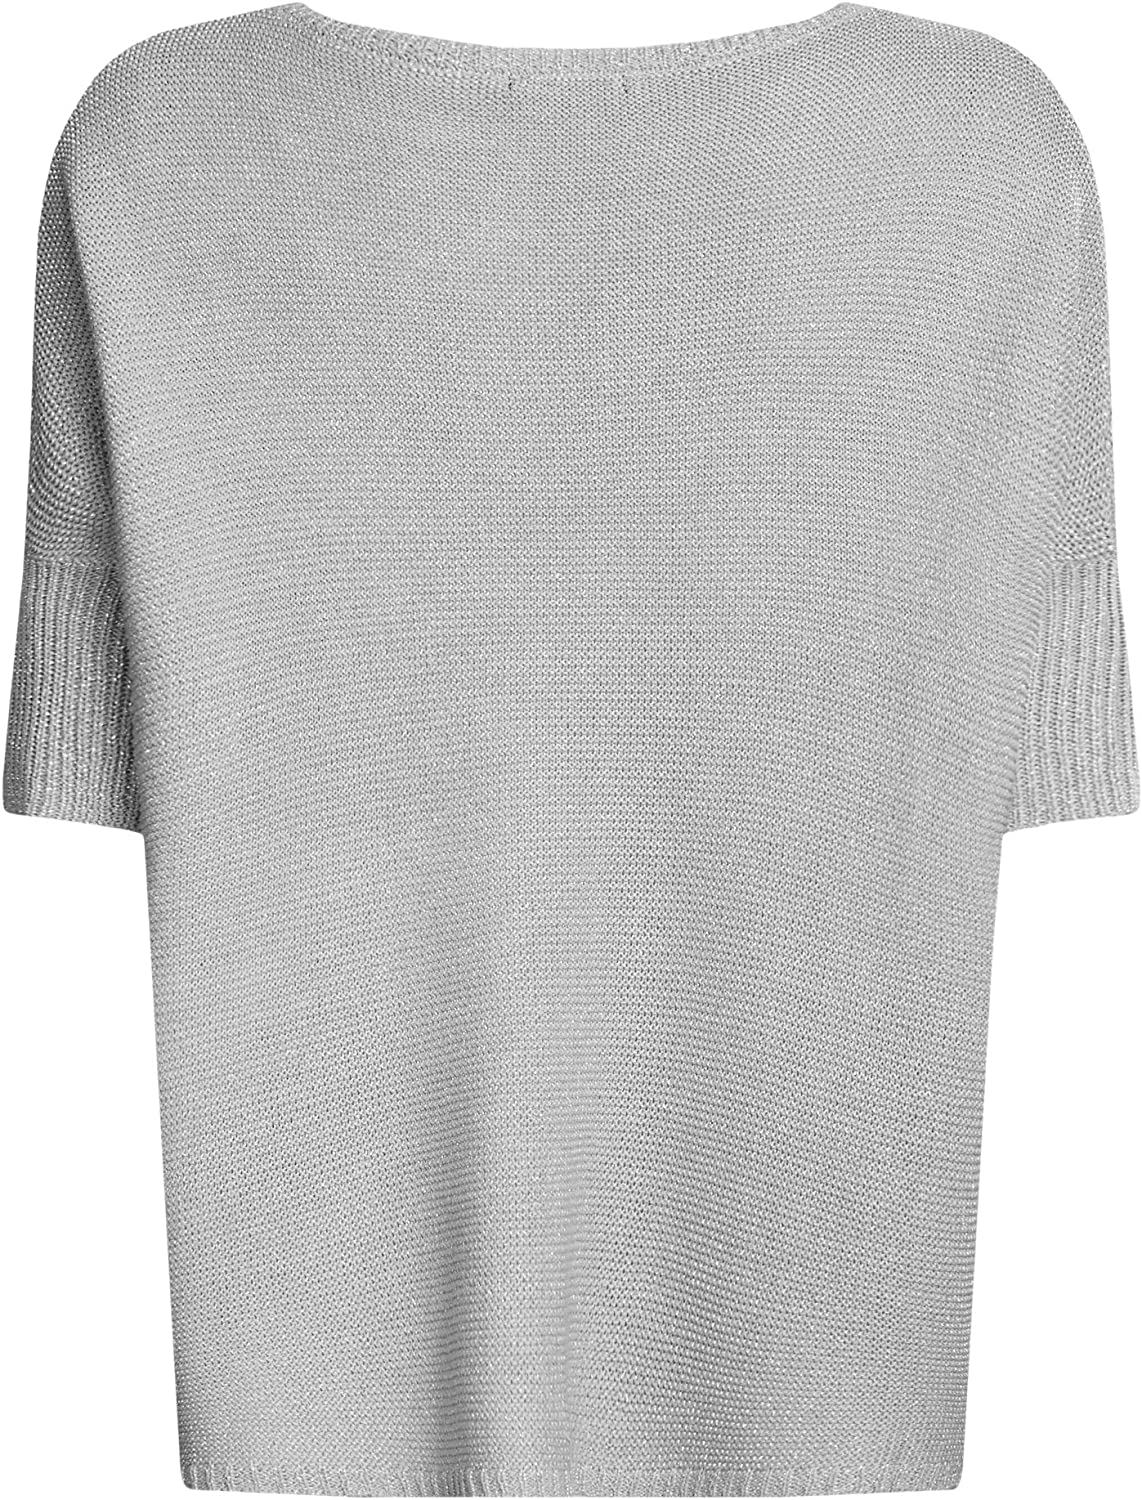 oodji Collection Mujer Jersey Ancho con L/úrex